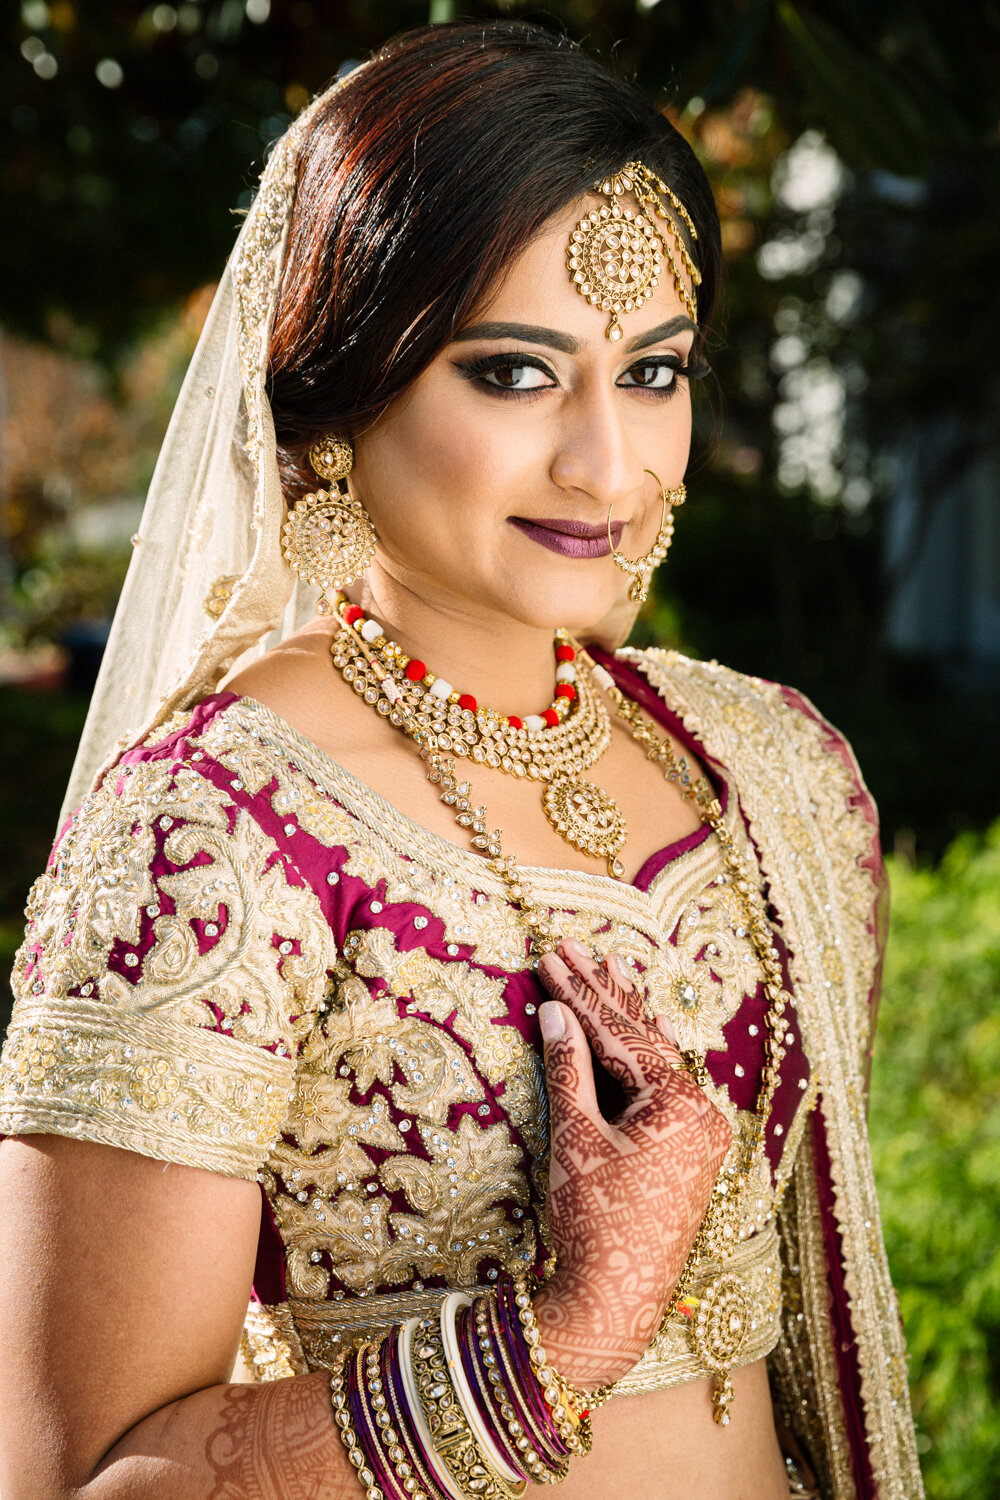 austin-texas-indian-wedding-photographer-edward-bennett-29.jpg